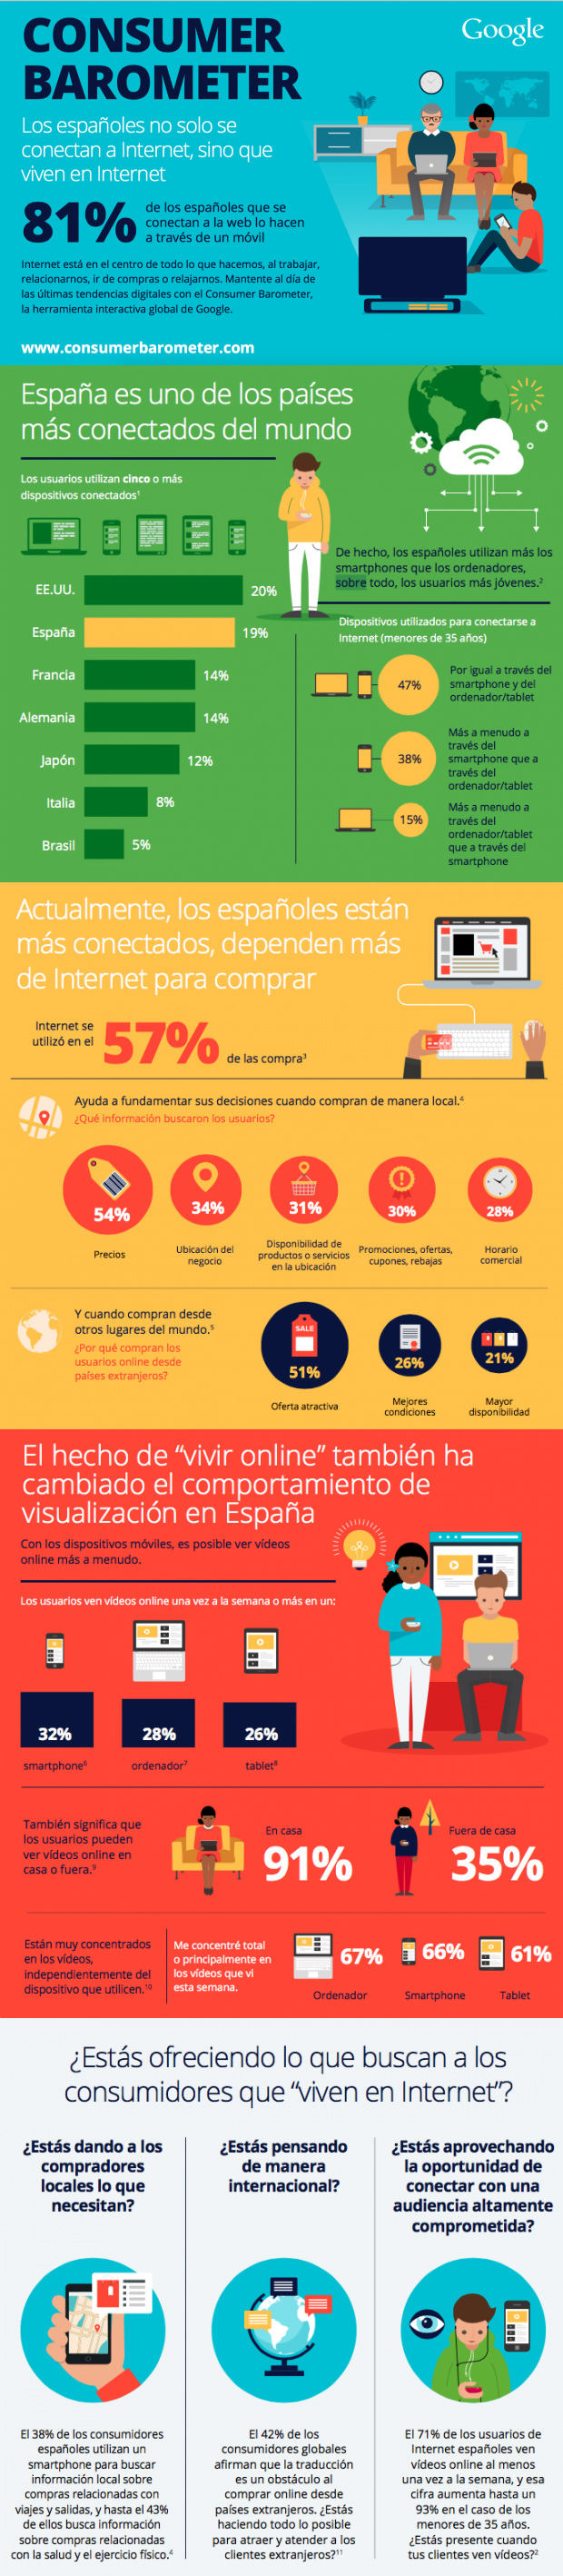 infografia-customer-barometer-2015-1-reasonwhy-blog-hostalia-hosting